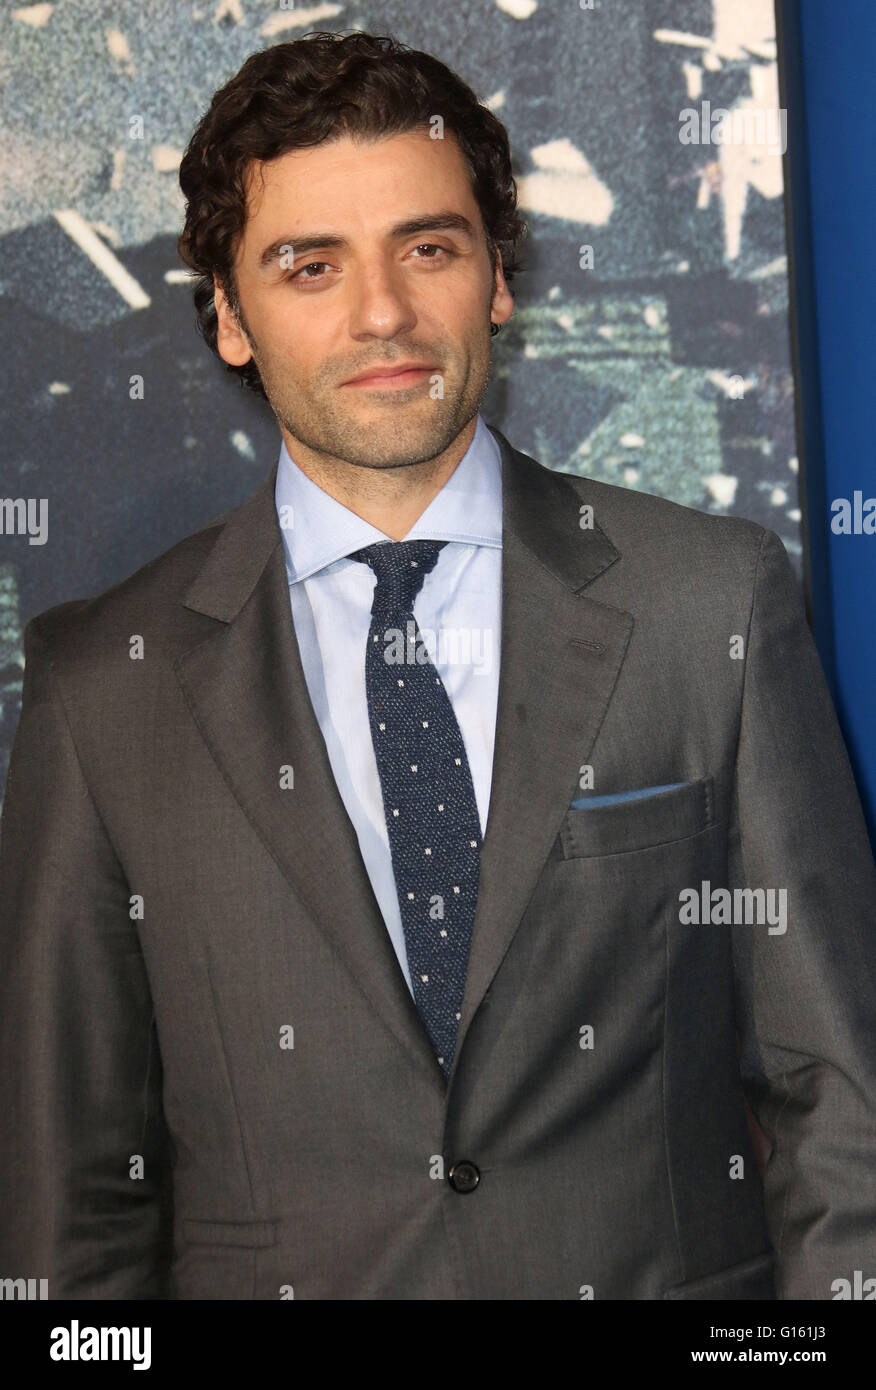 London, UK. 9th May, 2016. Oscar Isaac attending 'X-Men Apocalypse' Global Fan Screening at BFI Imax in - Stock Image